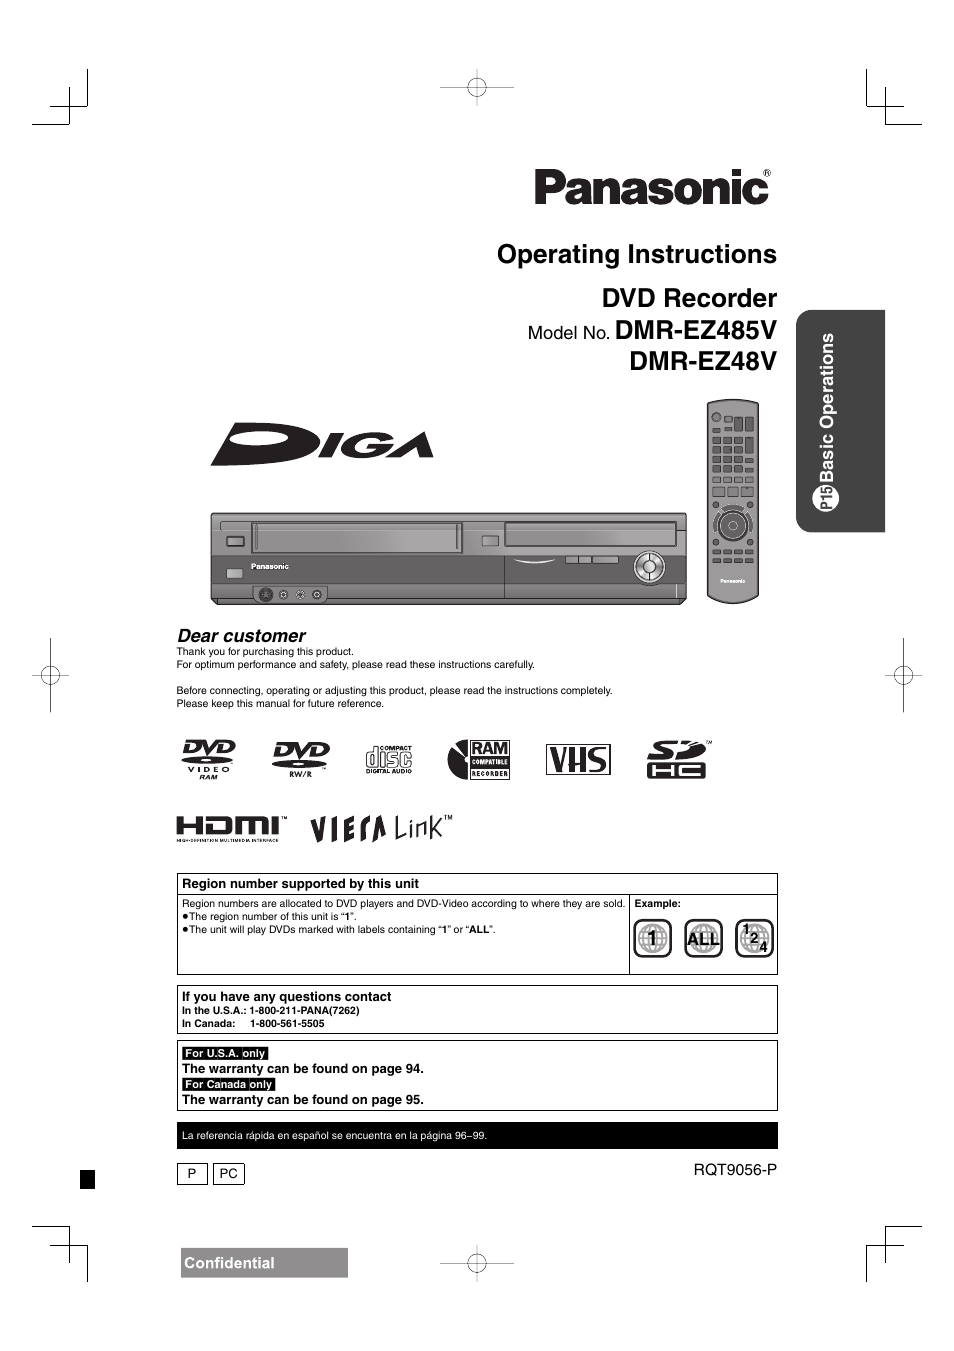 panasonic diga dmr ez48v user manual 100 pages also for dmr ez485v rh manualsdir com panasonic dmr-ez48v manual dmr-ez48v manual download